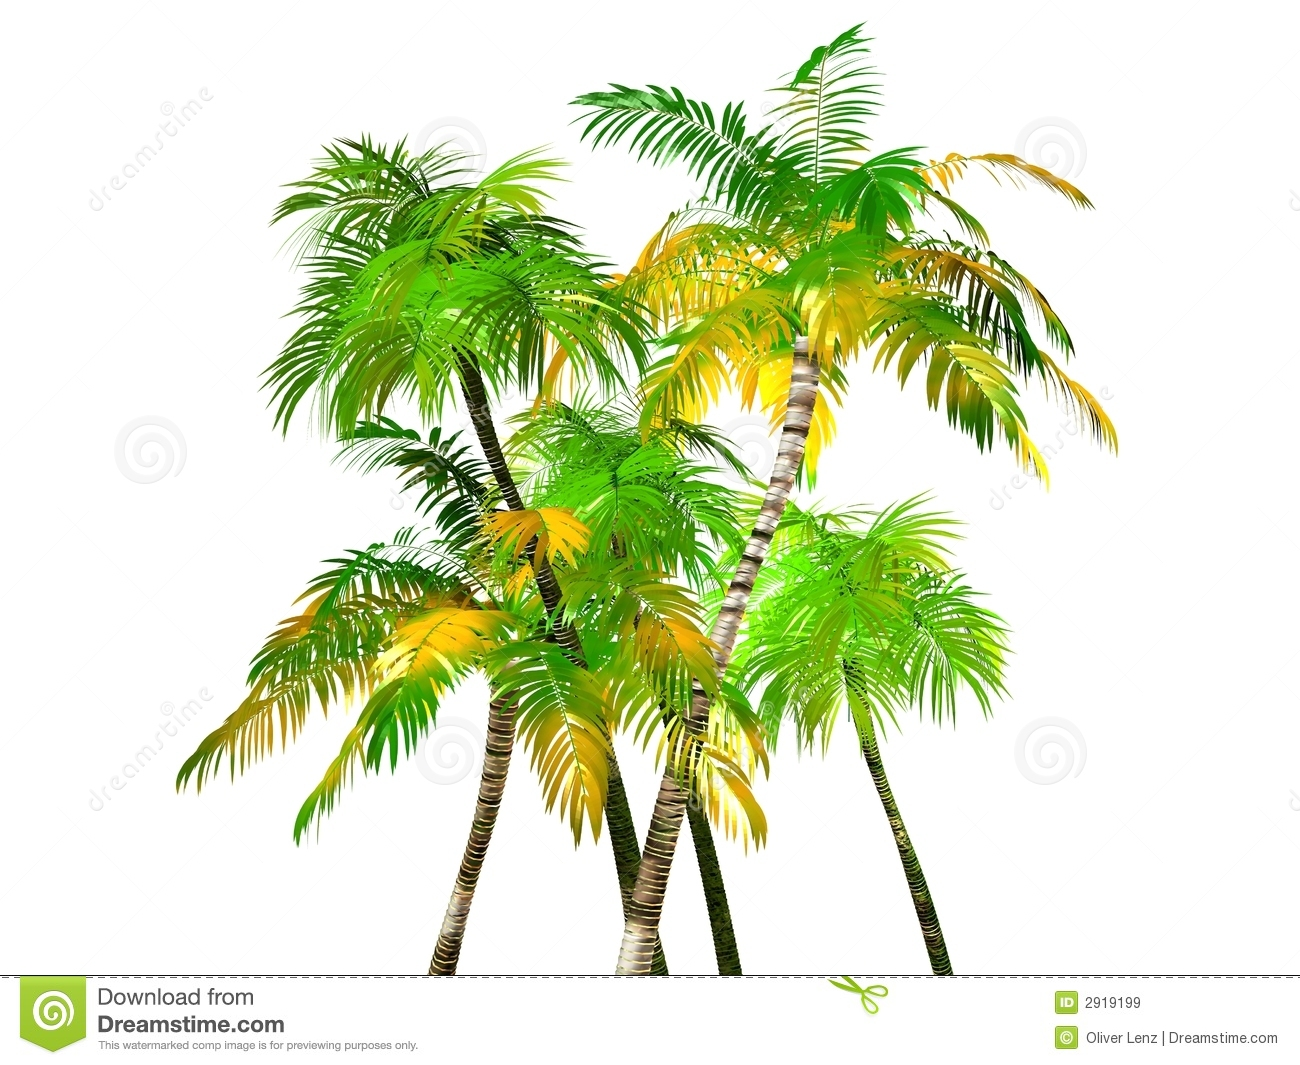 clump of palm trees royalty free stock photography image 31019597